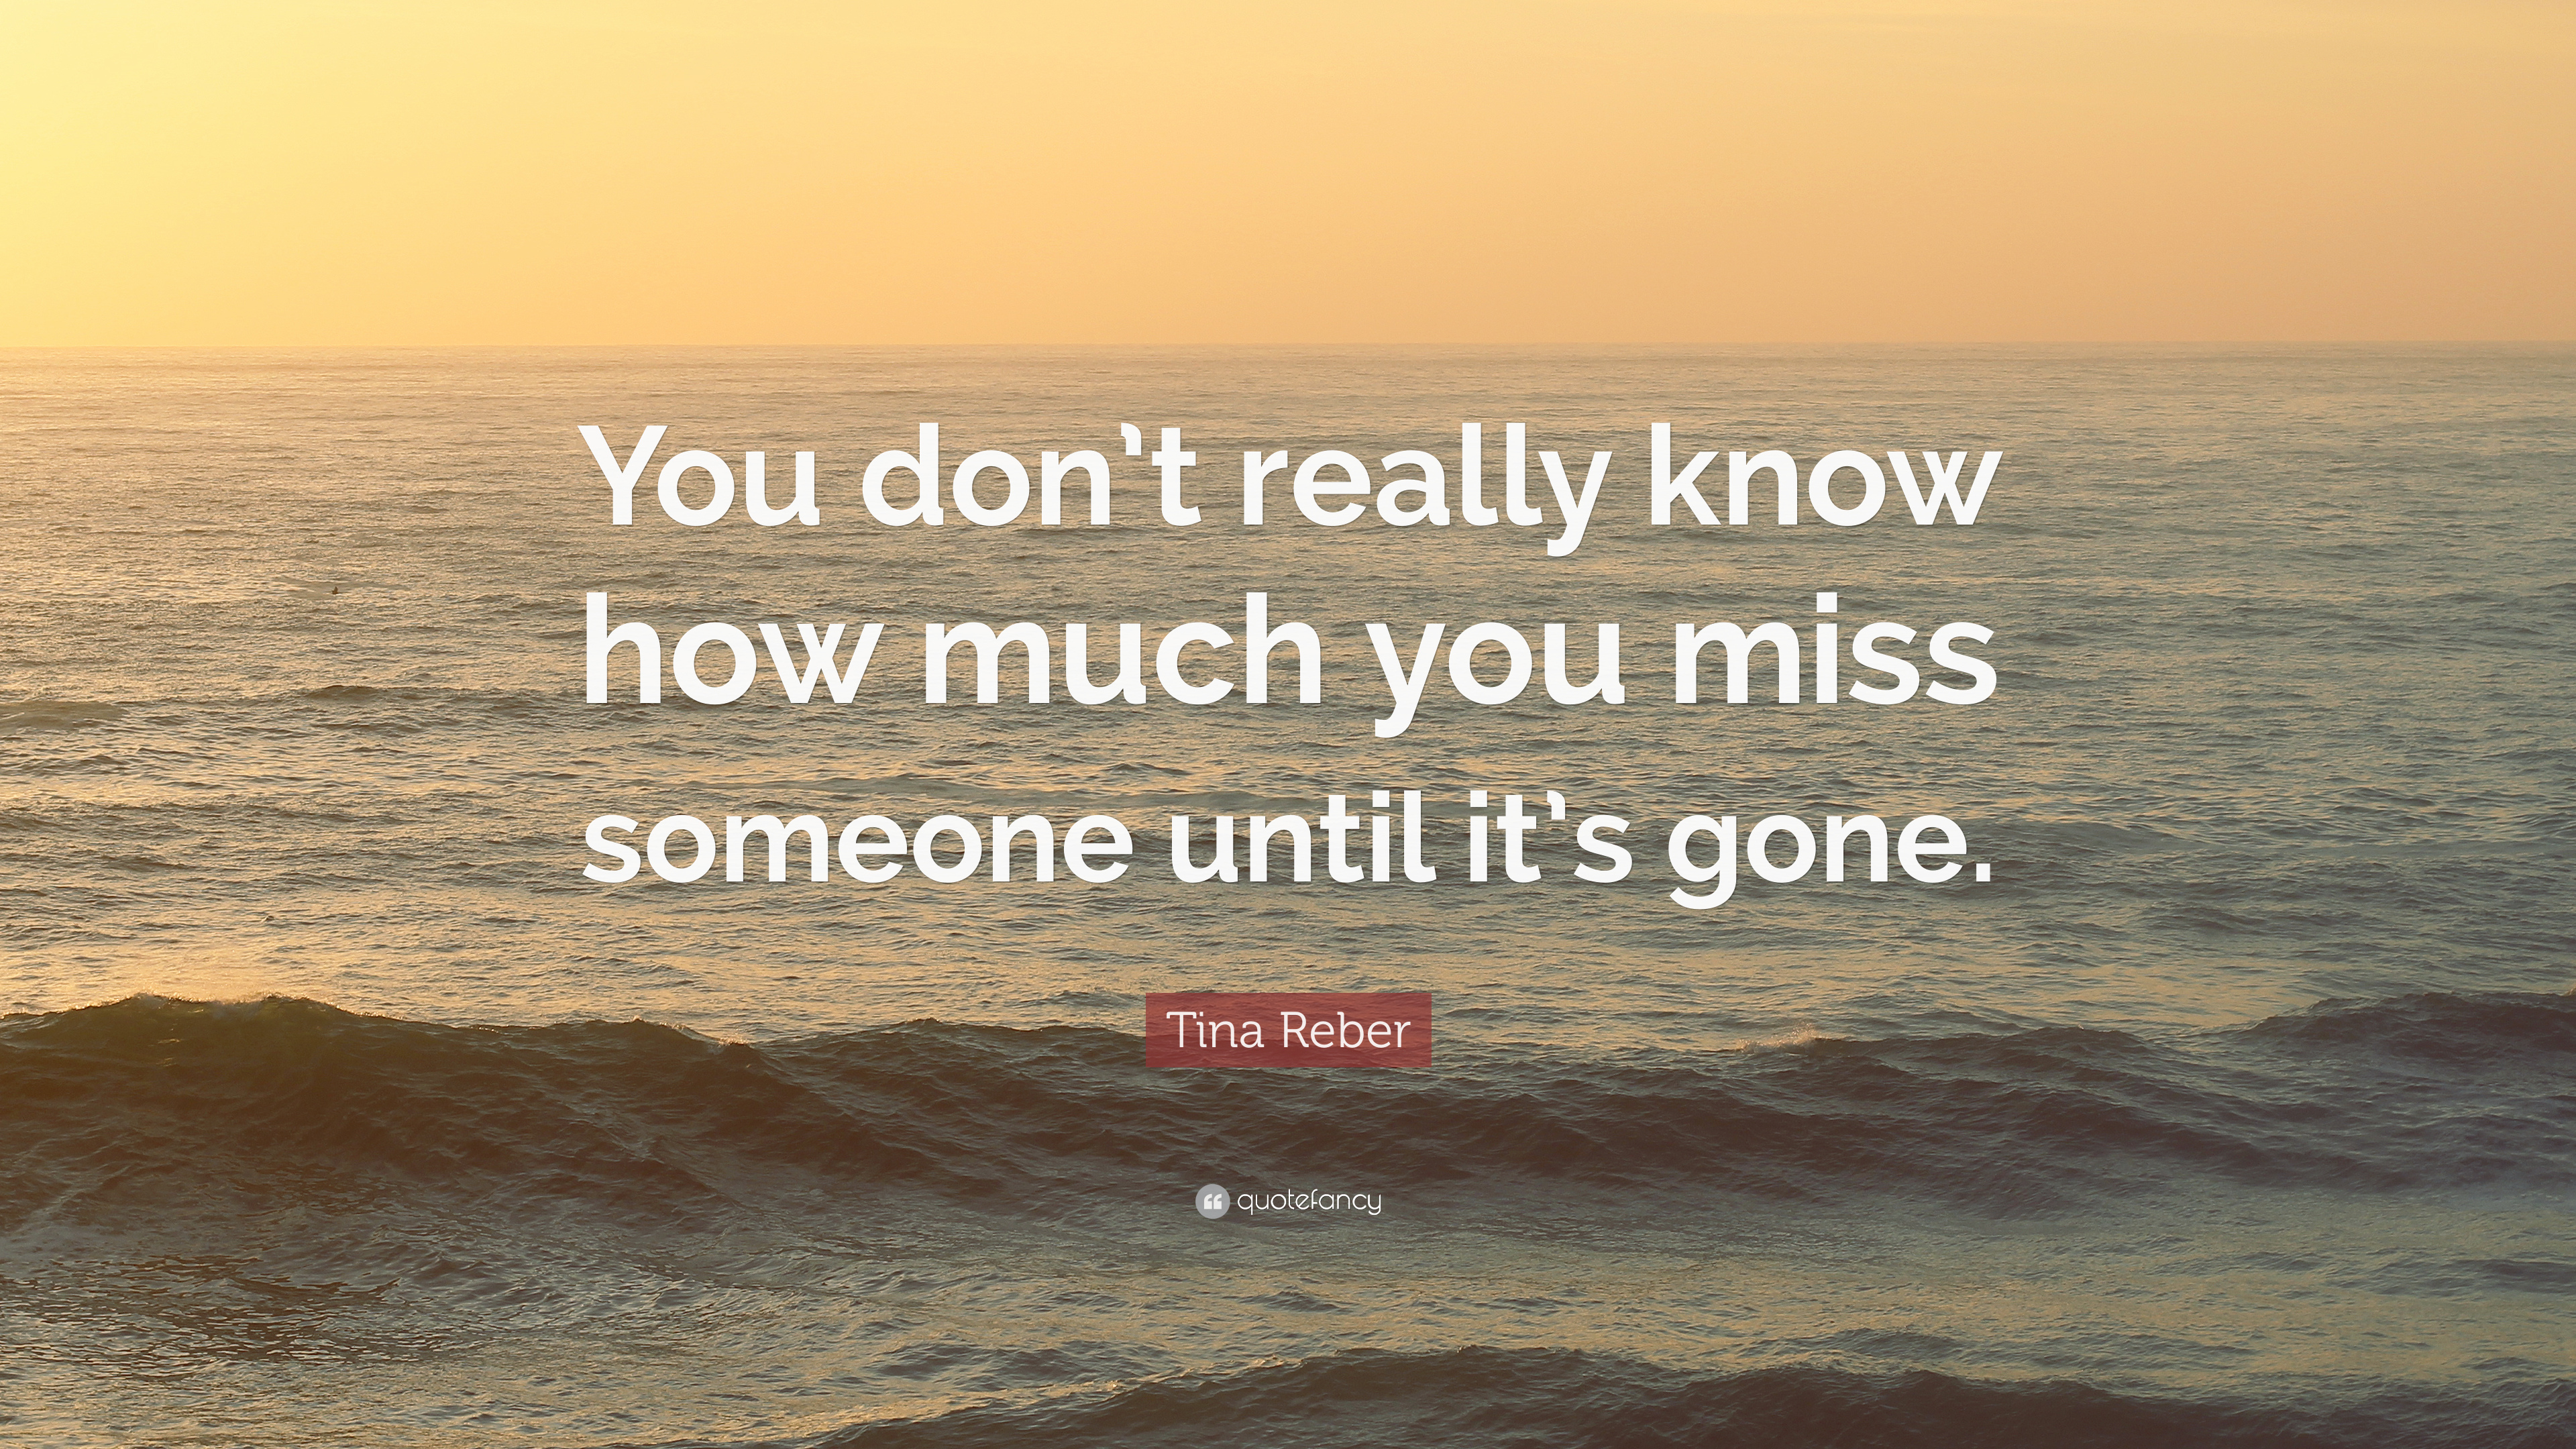 tina reber quote you dont really know how much you miss someone